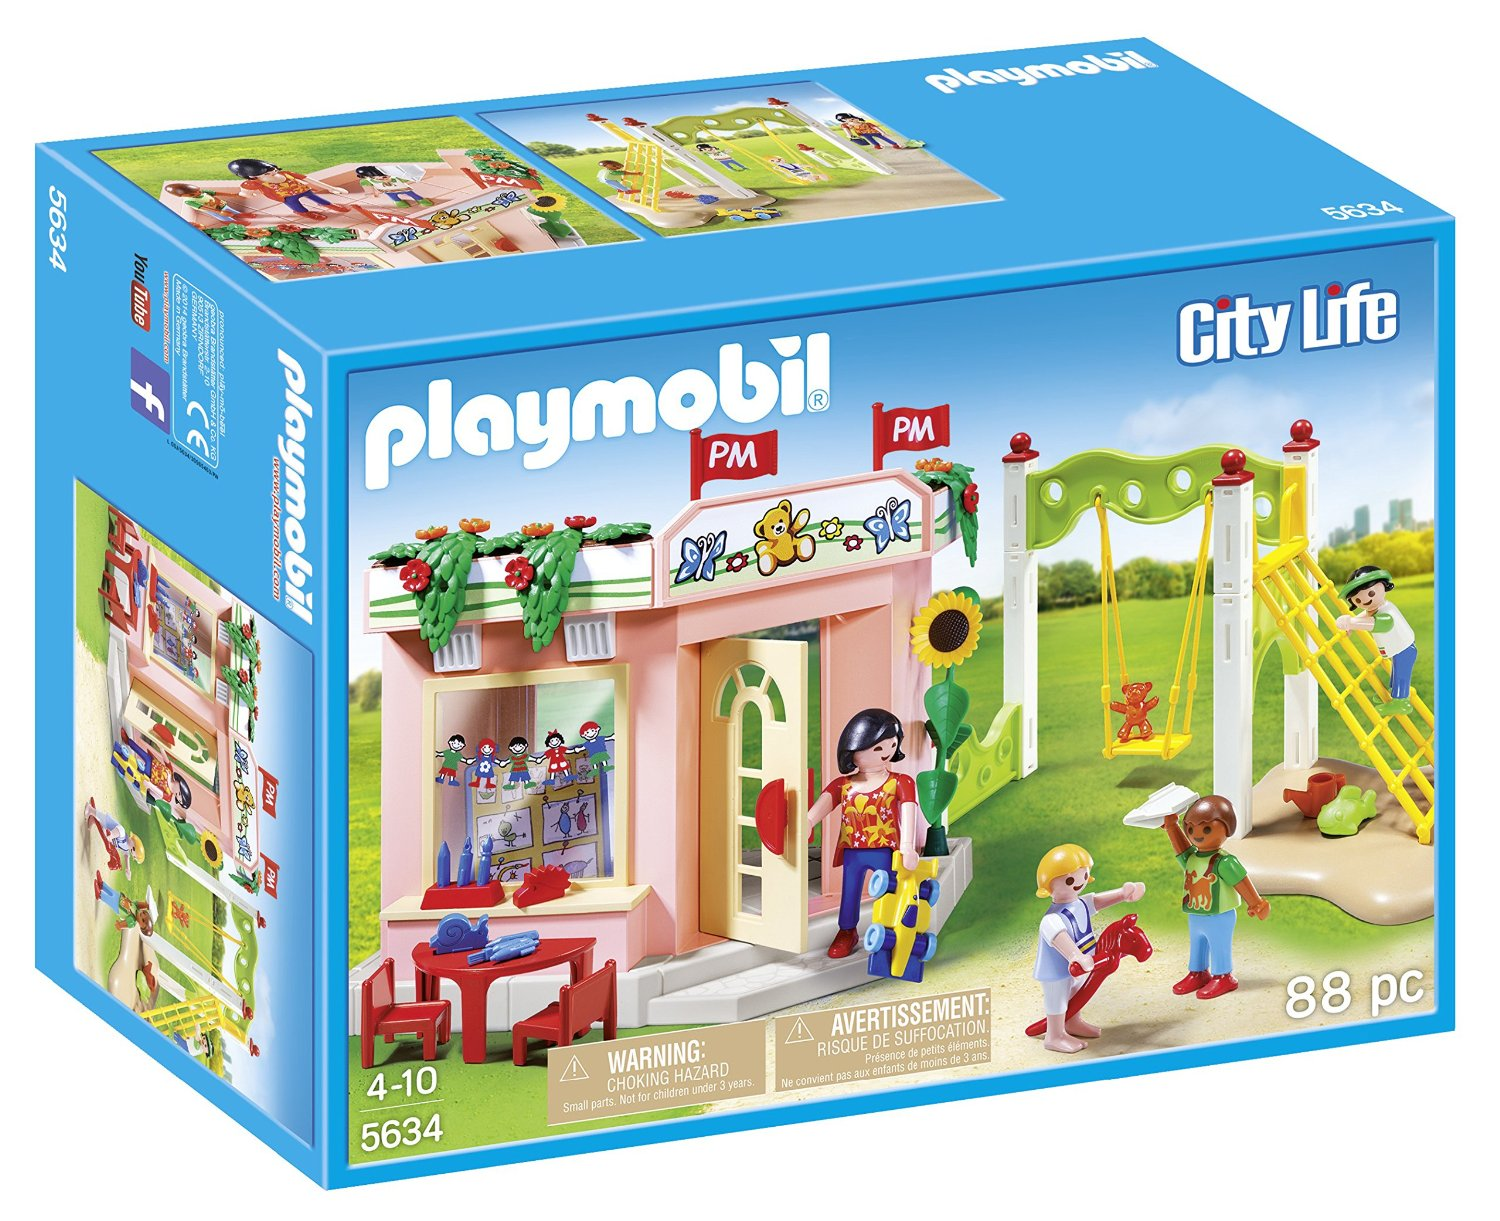 Playmobil City Life Küche 9269 Playmobil Preschool With Playground Playset Building Kit